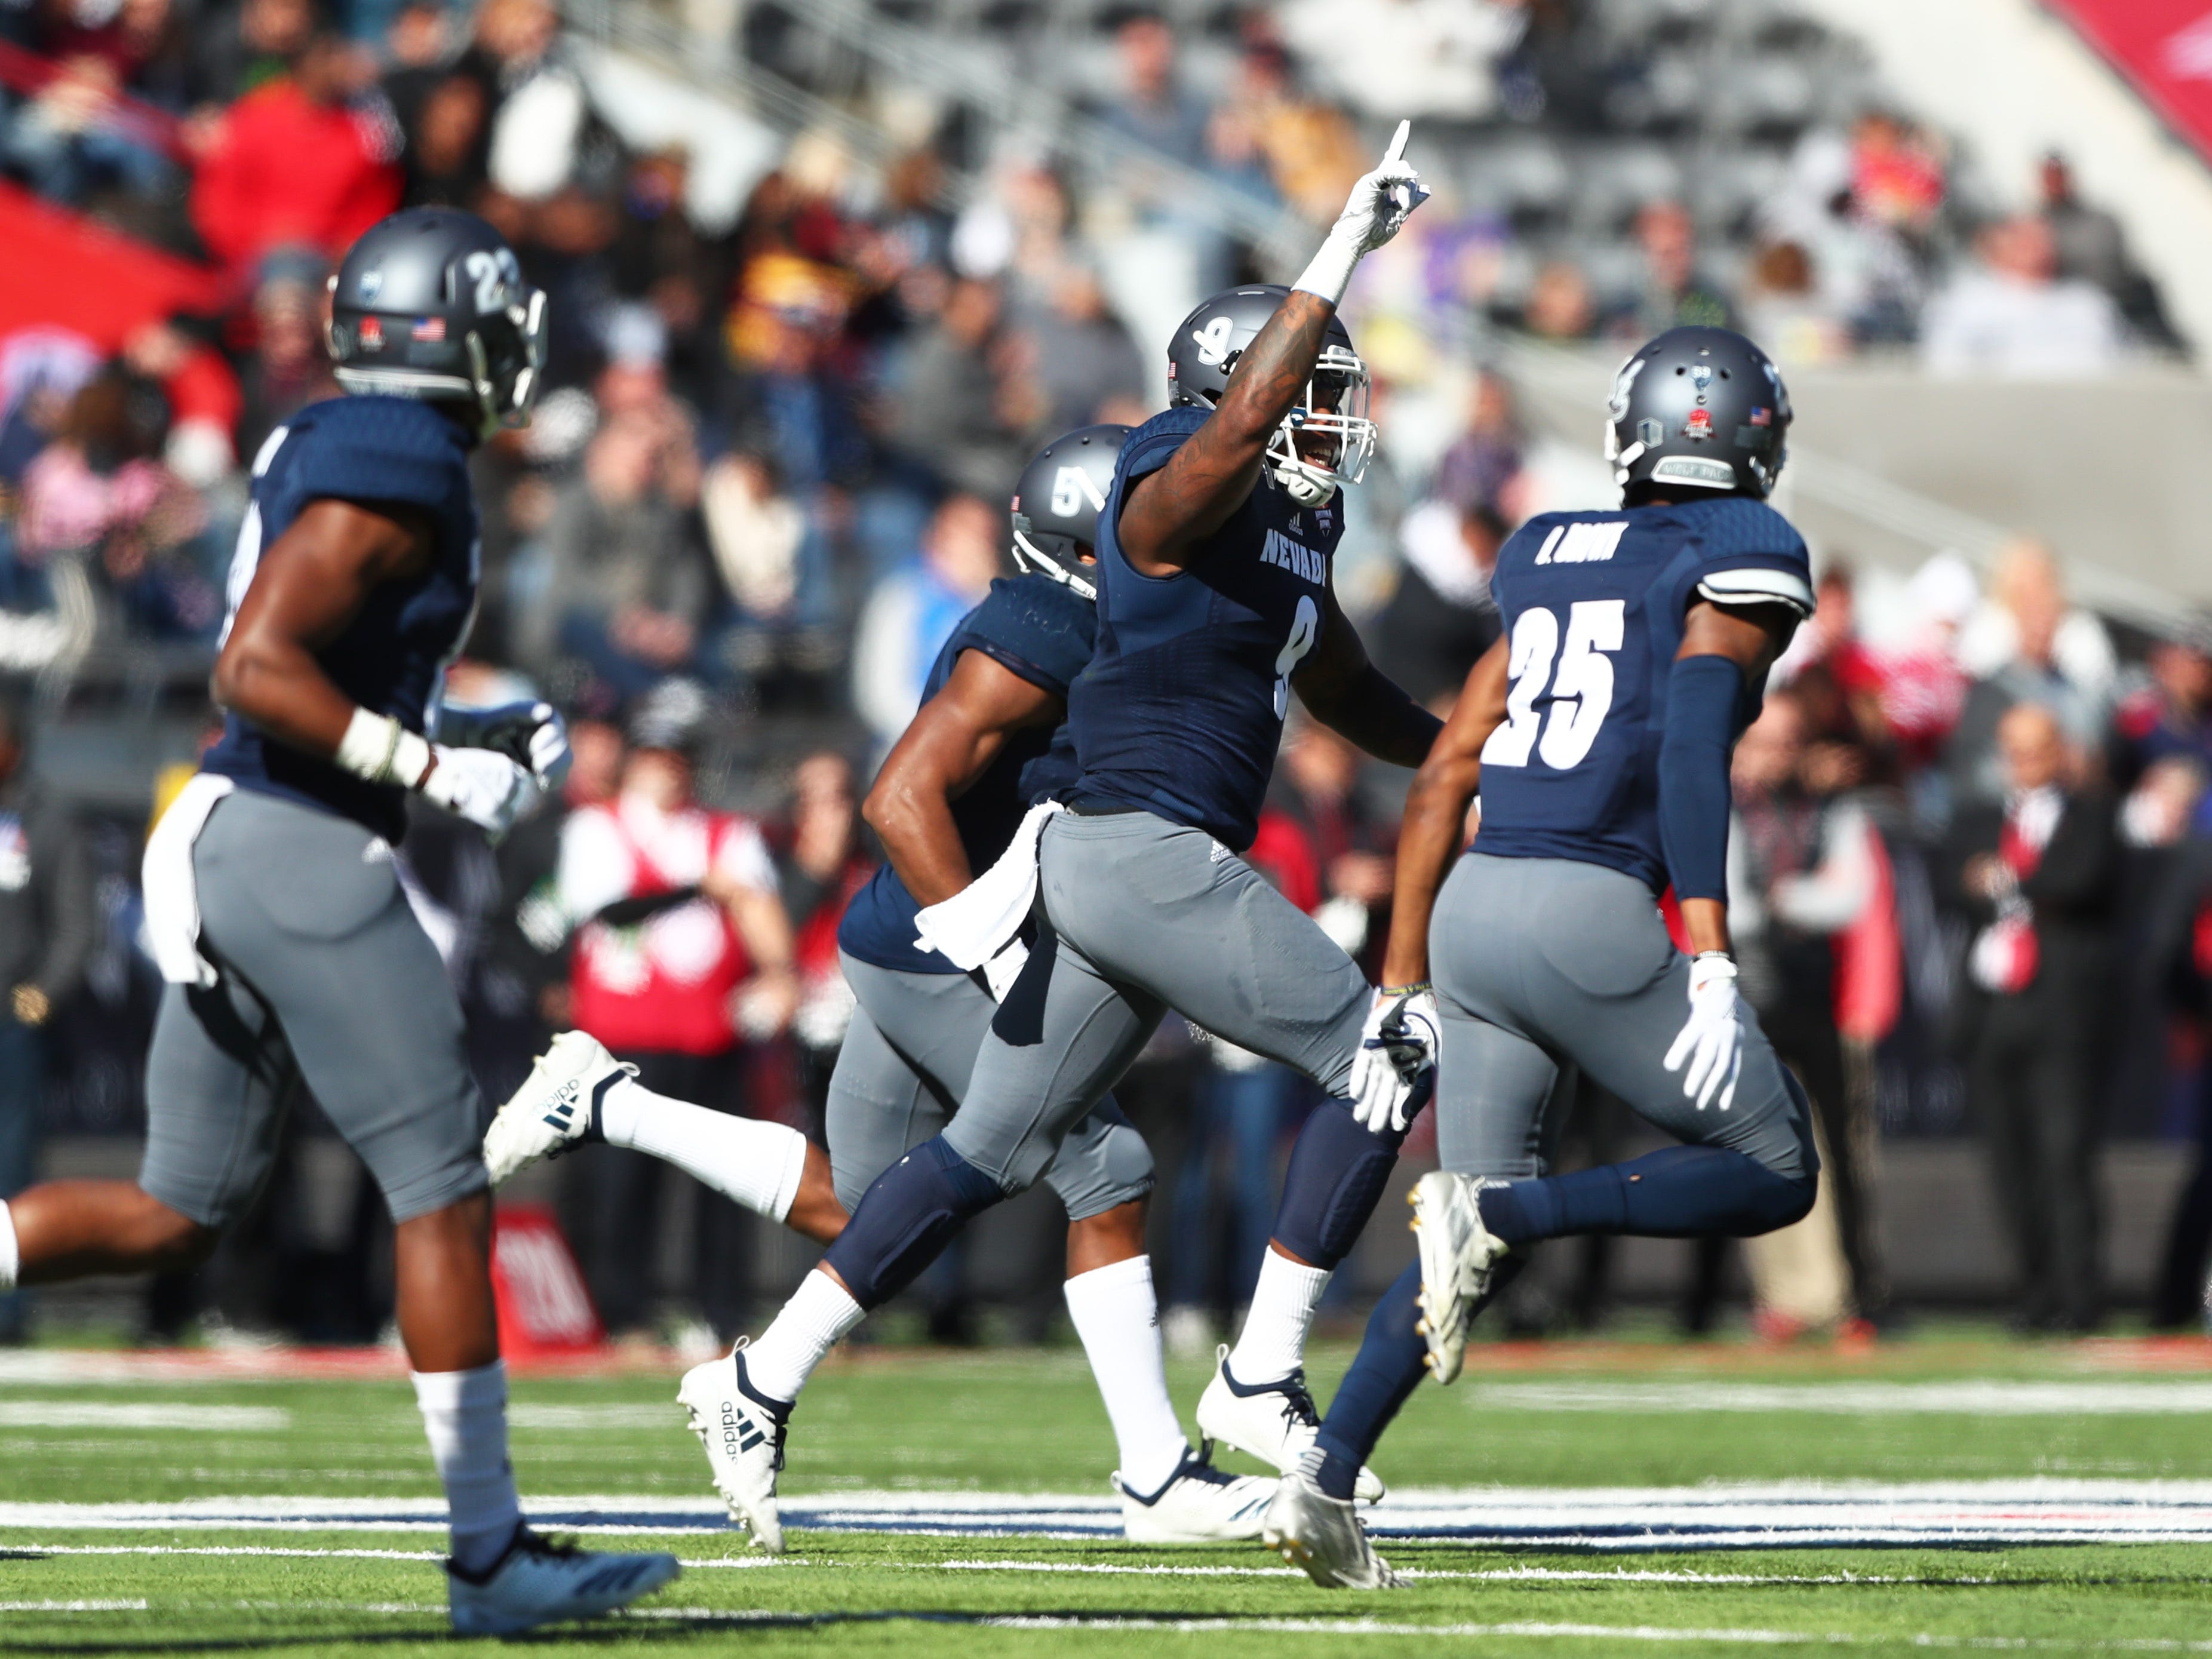 Dec 29, 2018; Tucson, AZ, USA; Nevada Wolf Pack defensive back Justin Brent (center) celebrates an interception in the first half against the Arkansas State Red Wolves in the 2018 Arizona Bowl at Arizona Stadium.